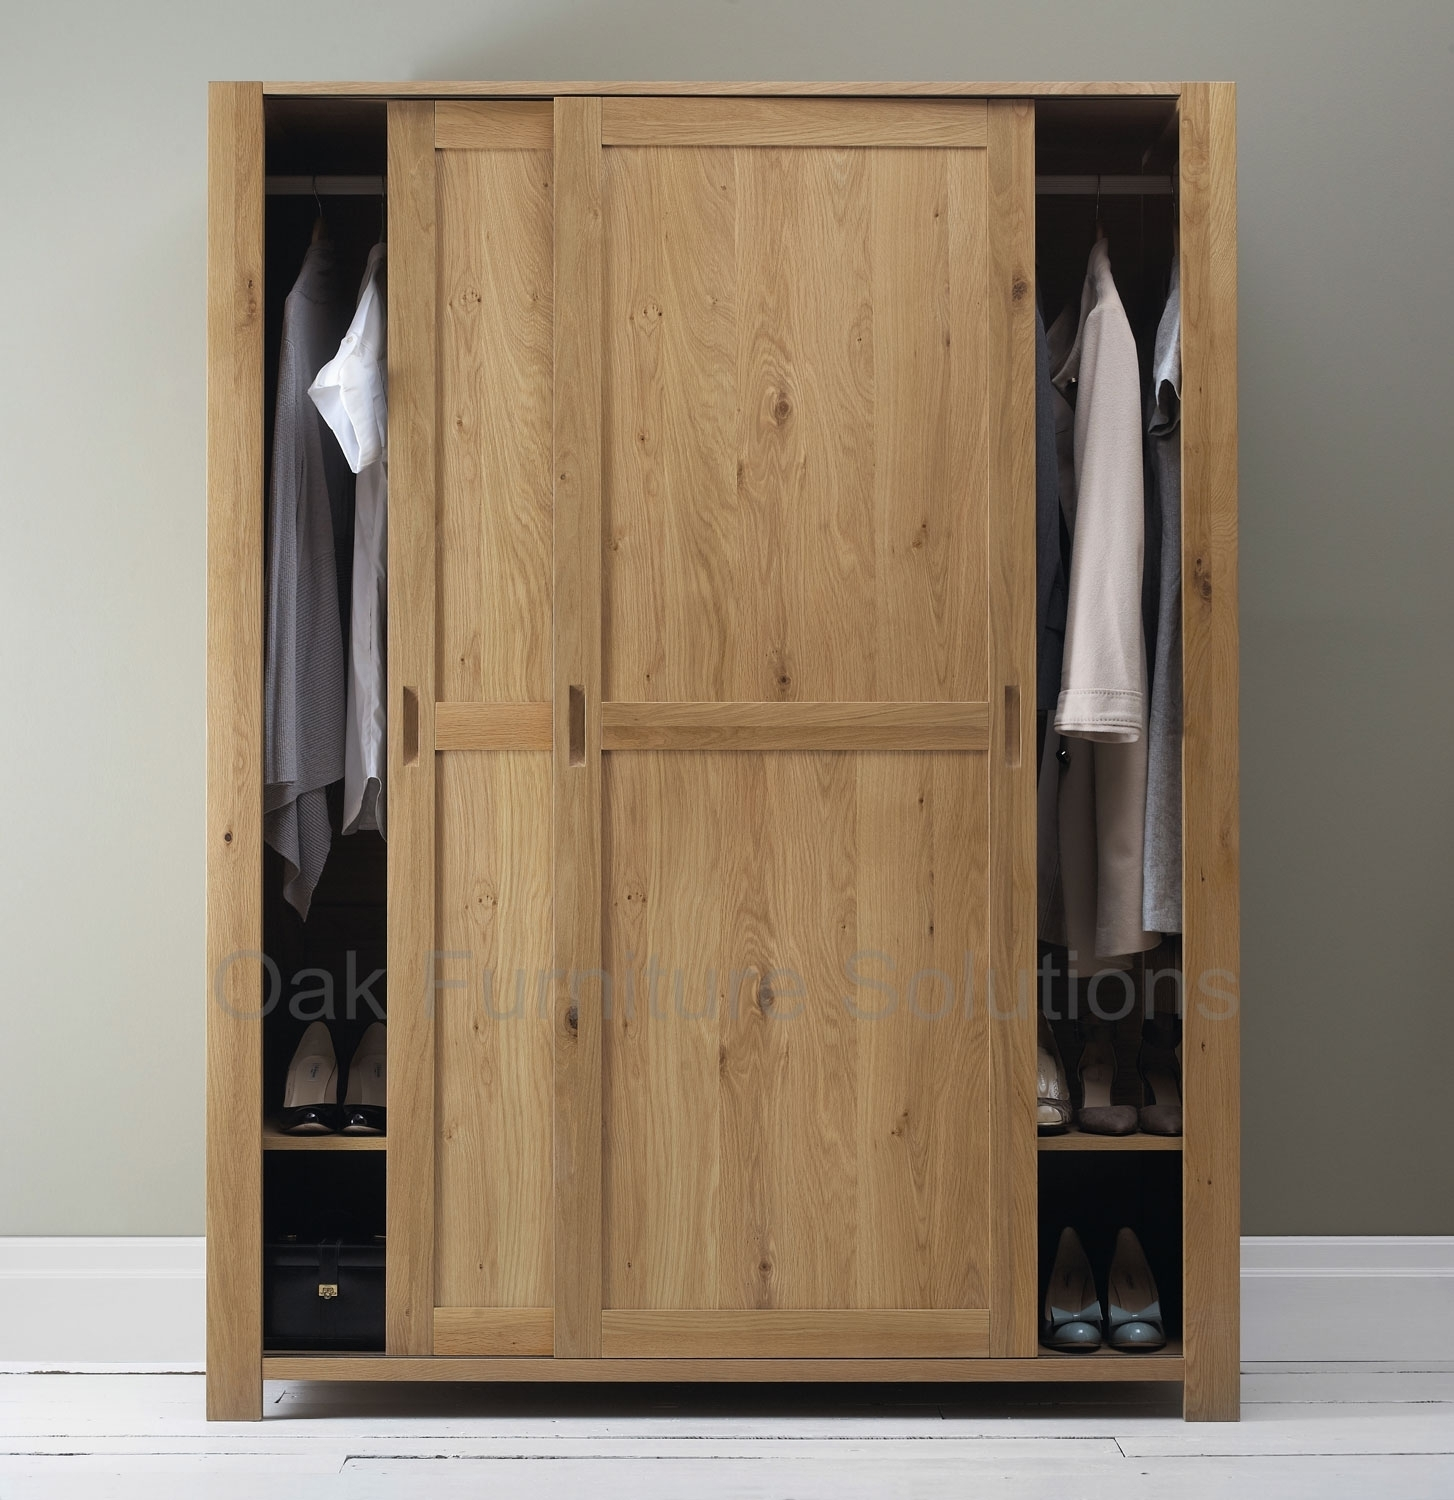 Permalink to Oak Finish Sliding Closet Doors